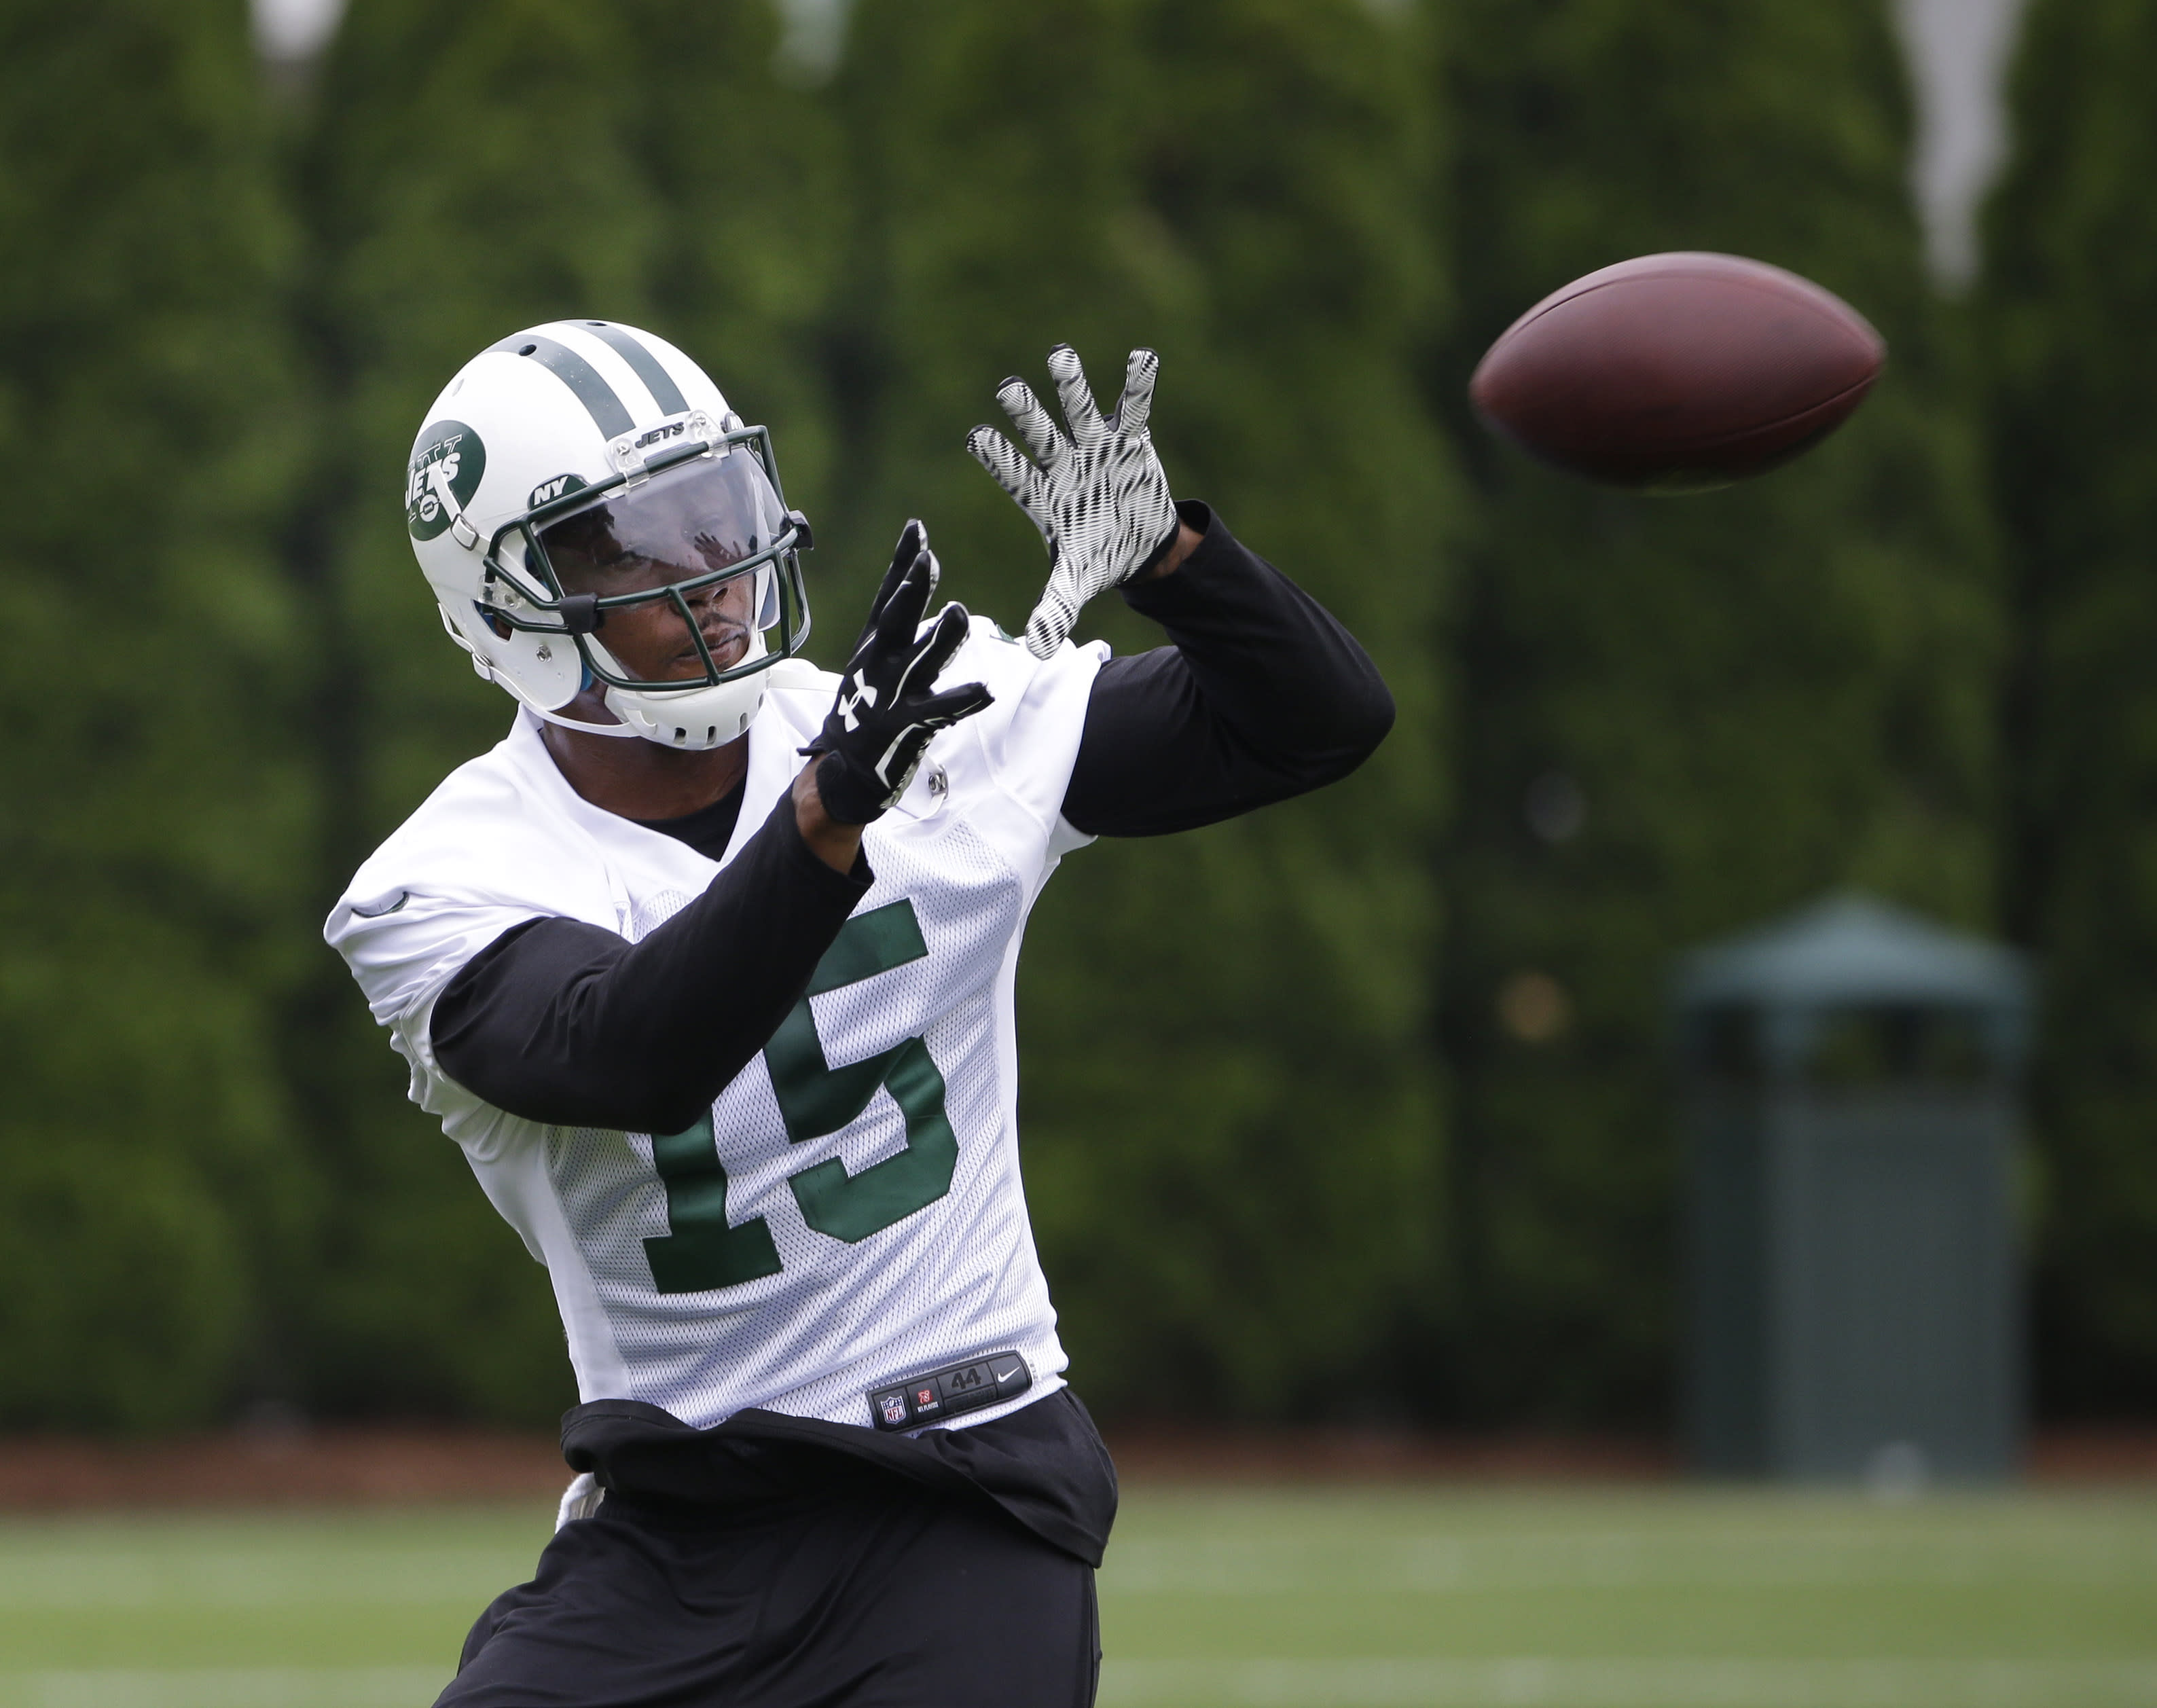 Marshall meshing with Jets, looking to prove himself again